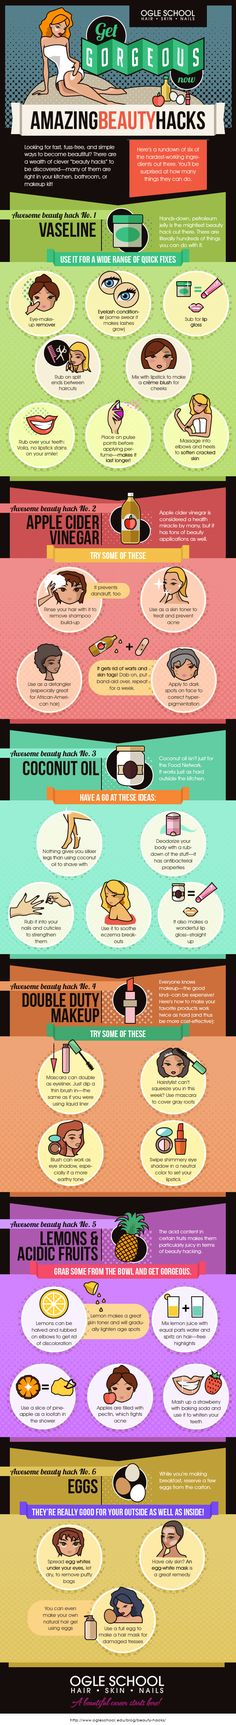 Tips to Get Gorgeous with Only 6 Beauty Ingredients - Tipsographic